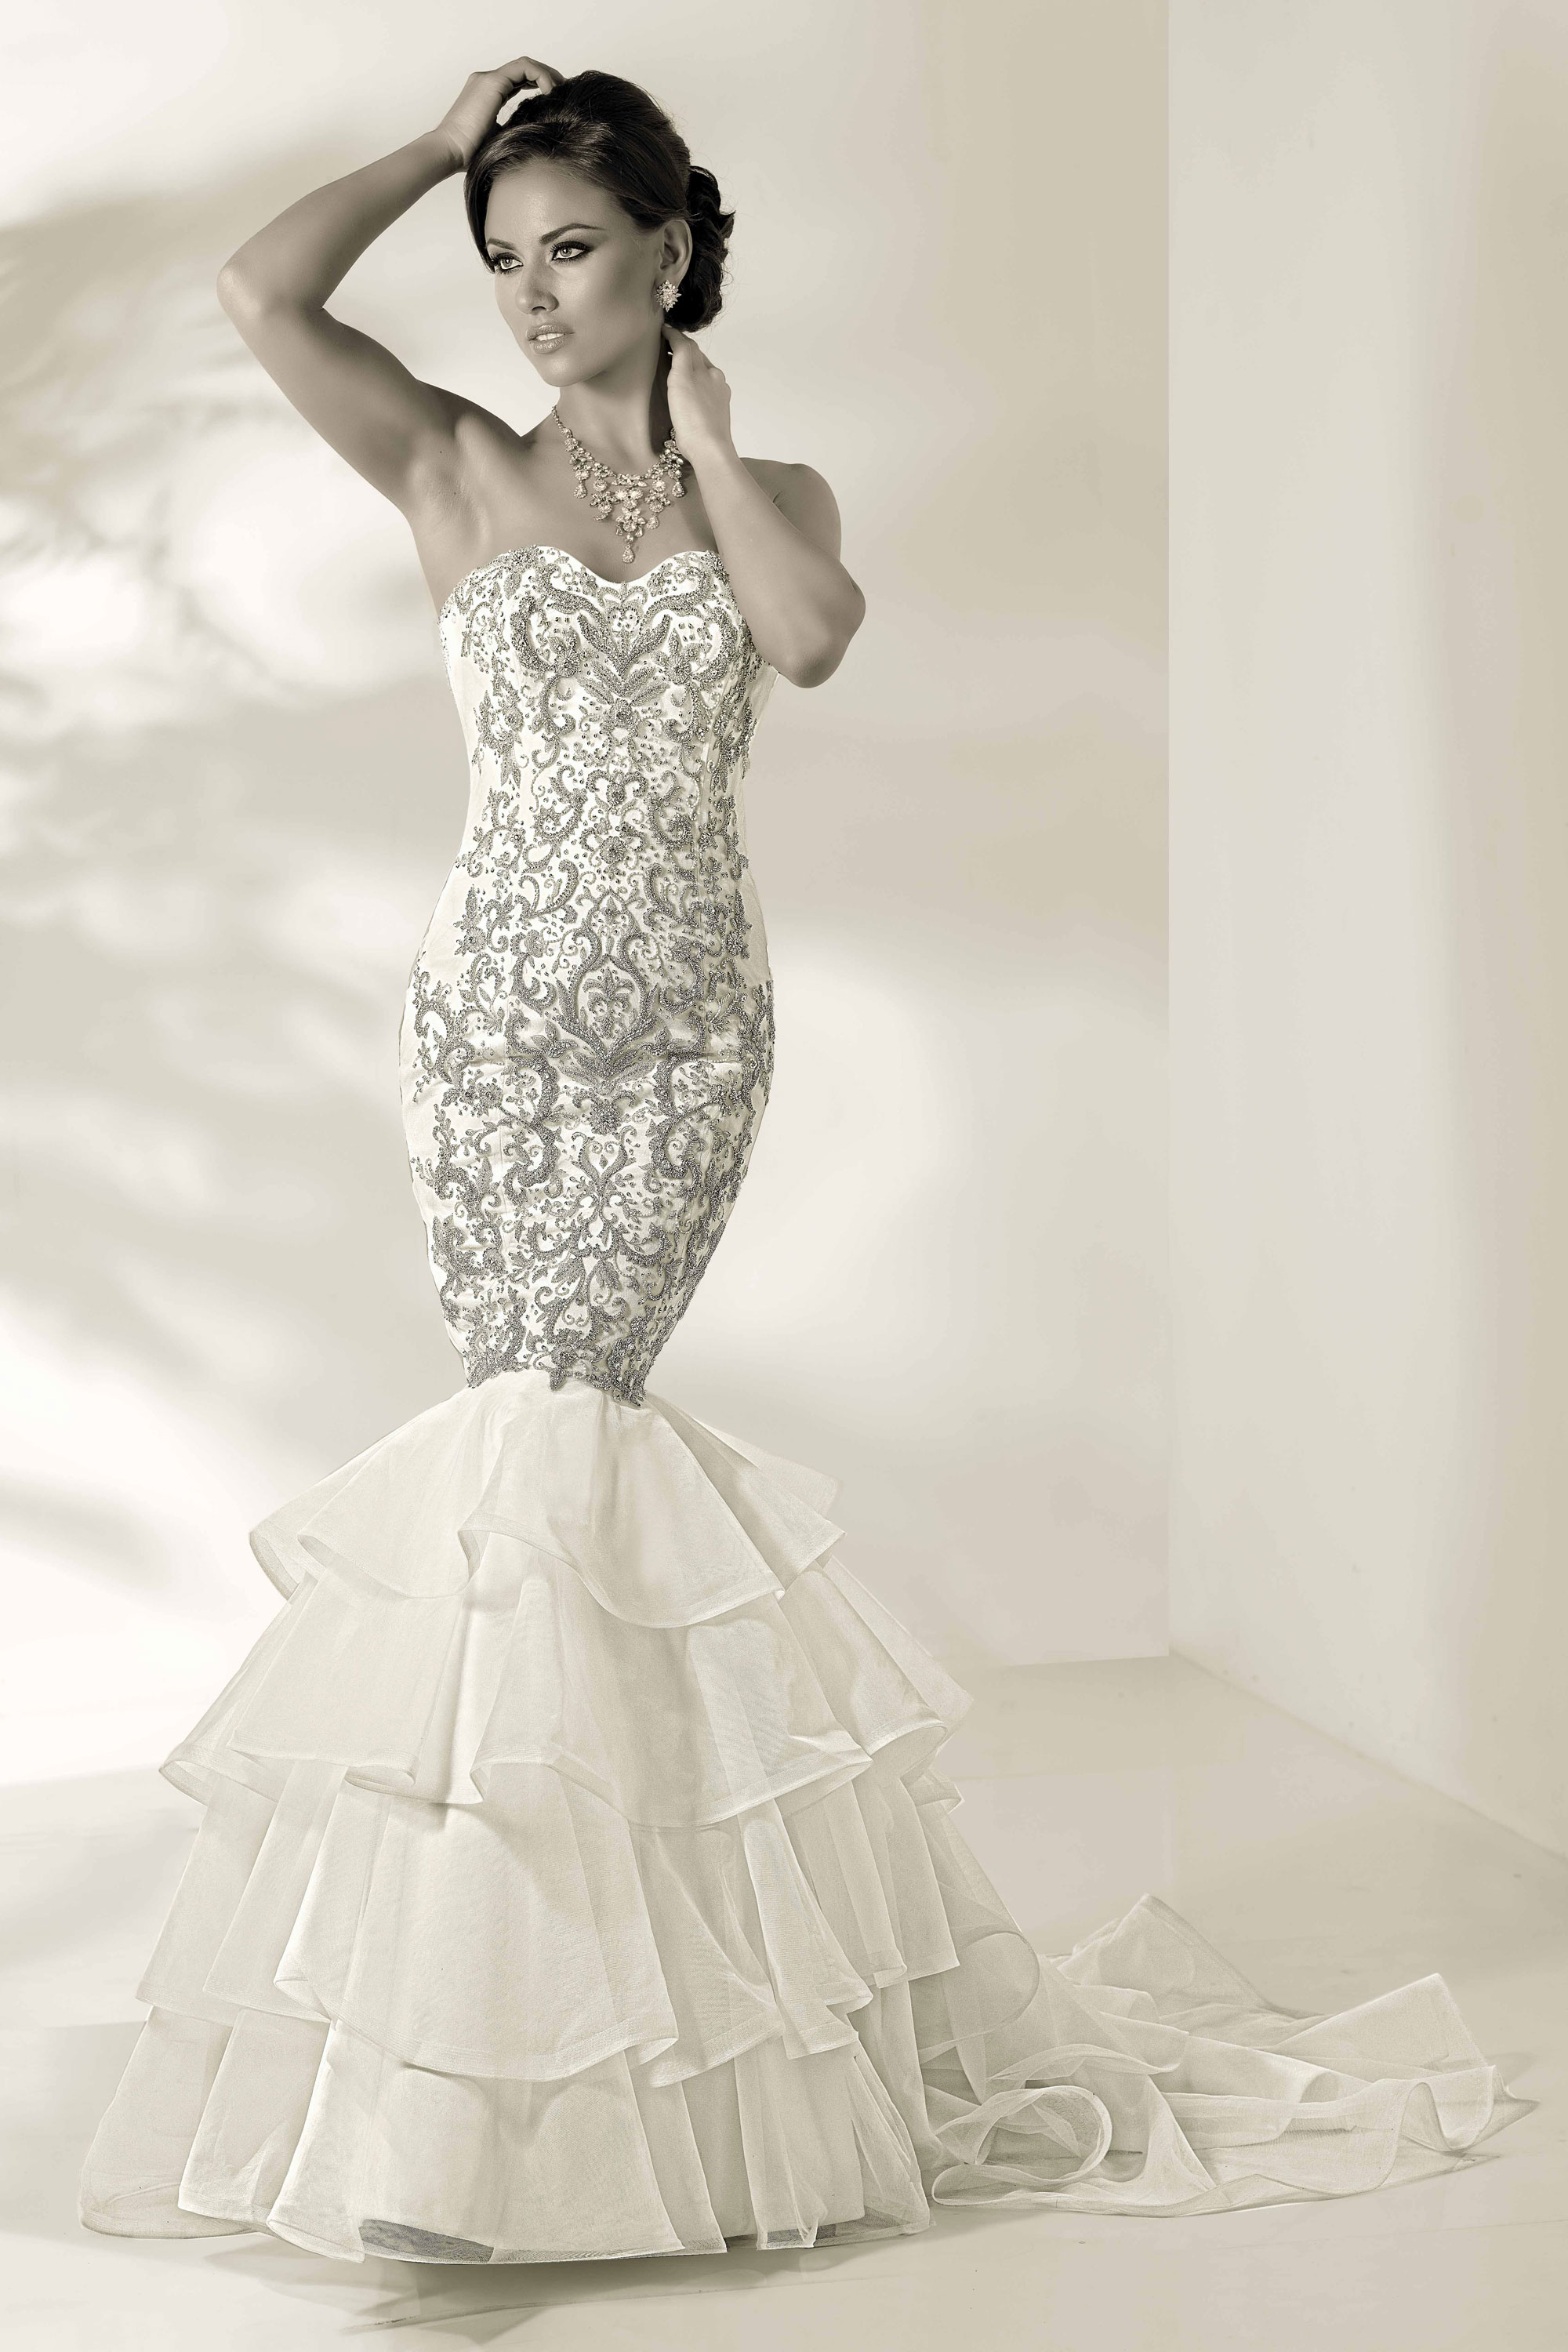 cristiano-lucci-wedding-dresses-10-01052014